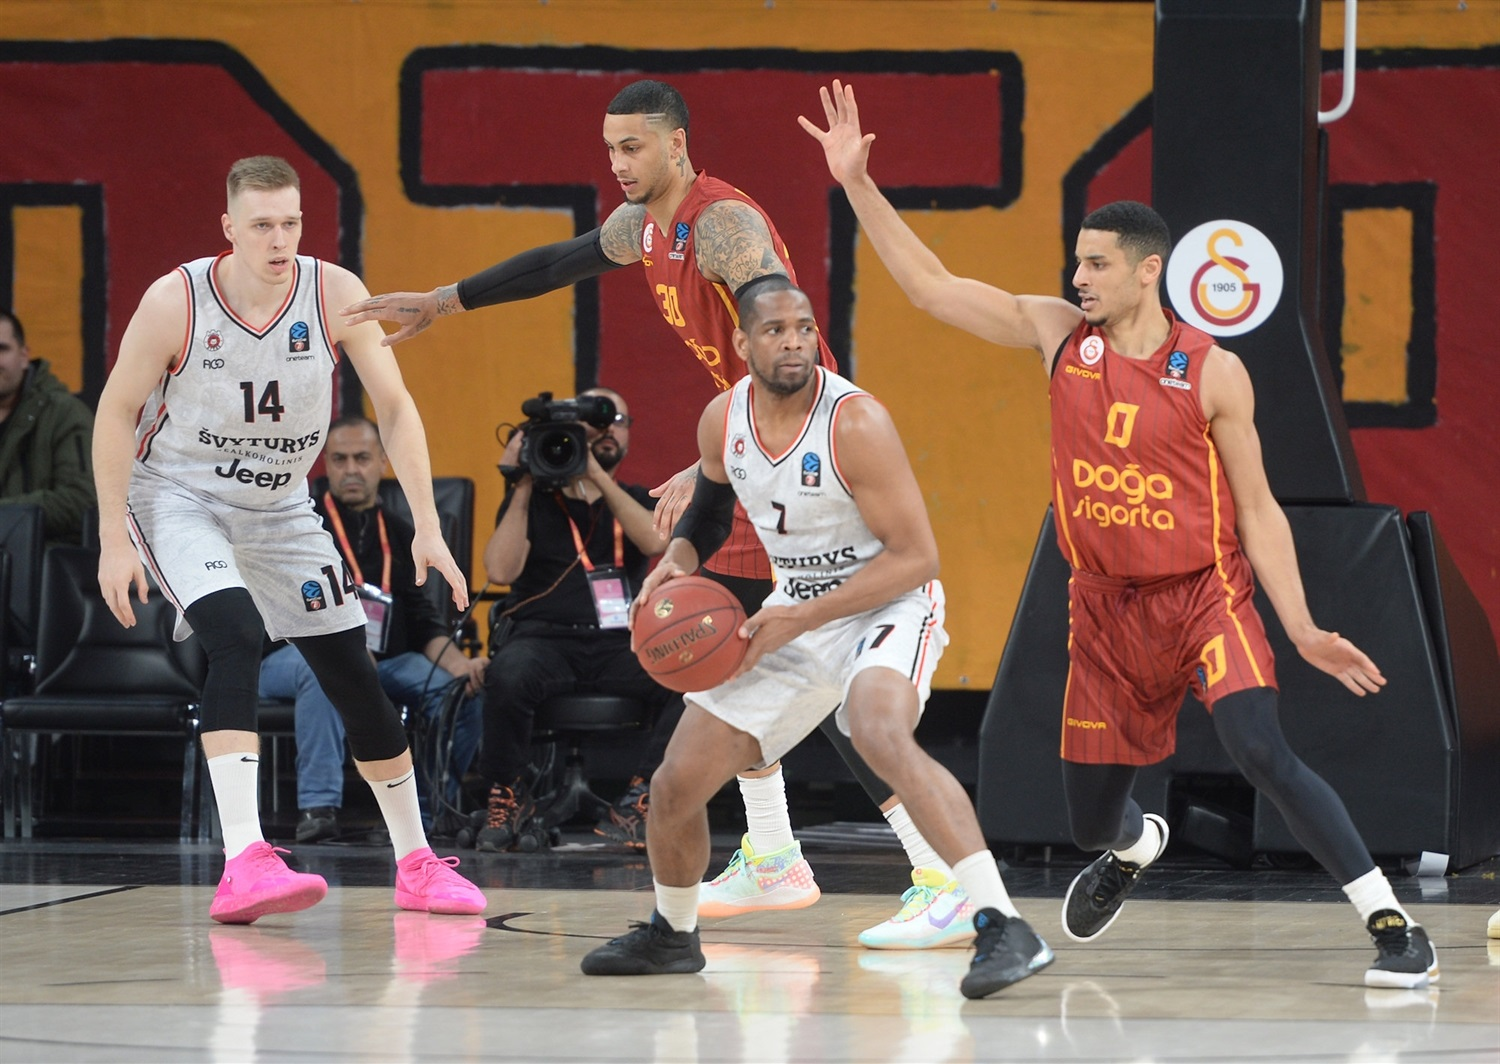 Terrell Holloway - Rytas Vilnius (photo Galatasaray) - EC19